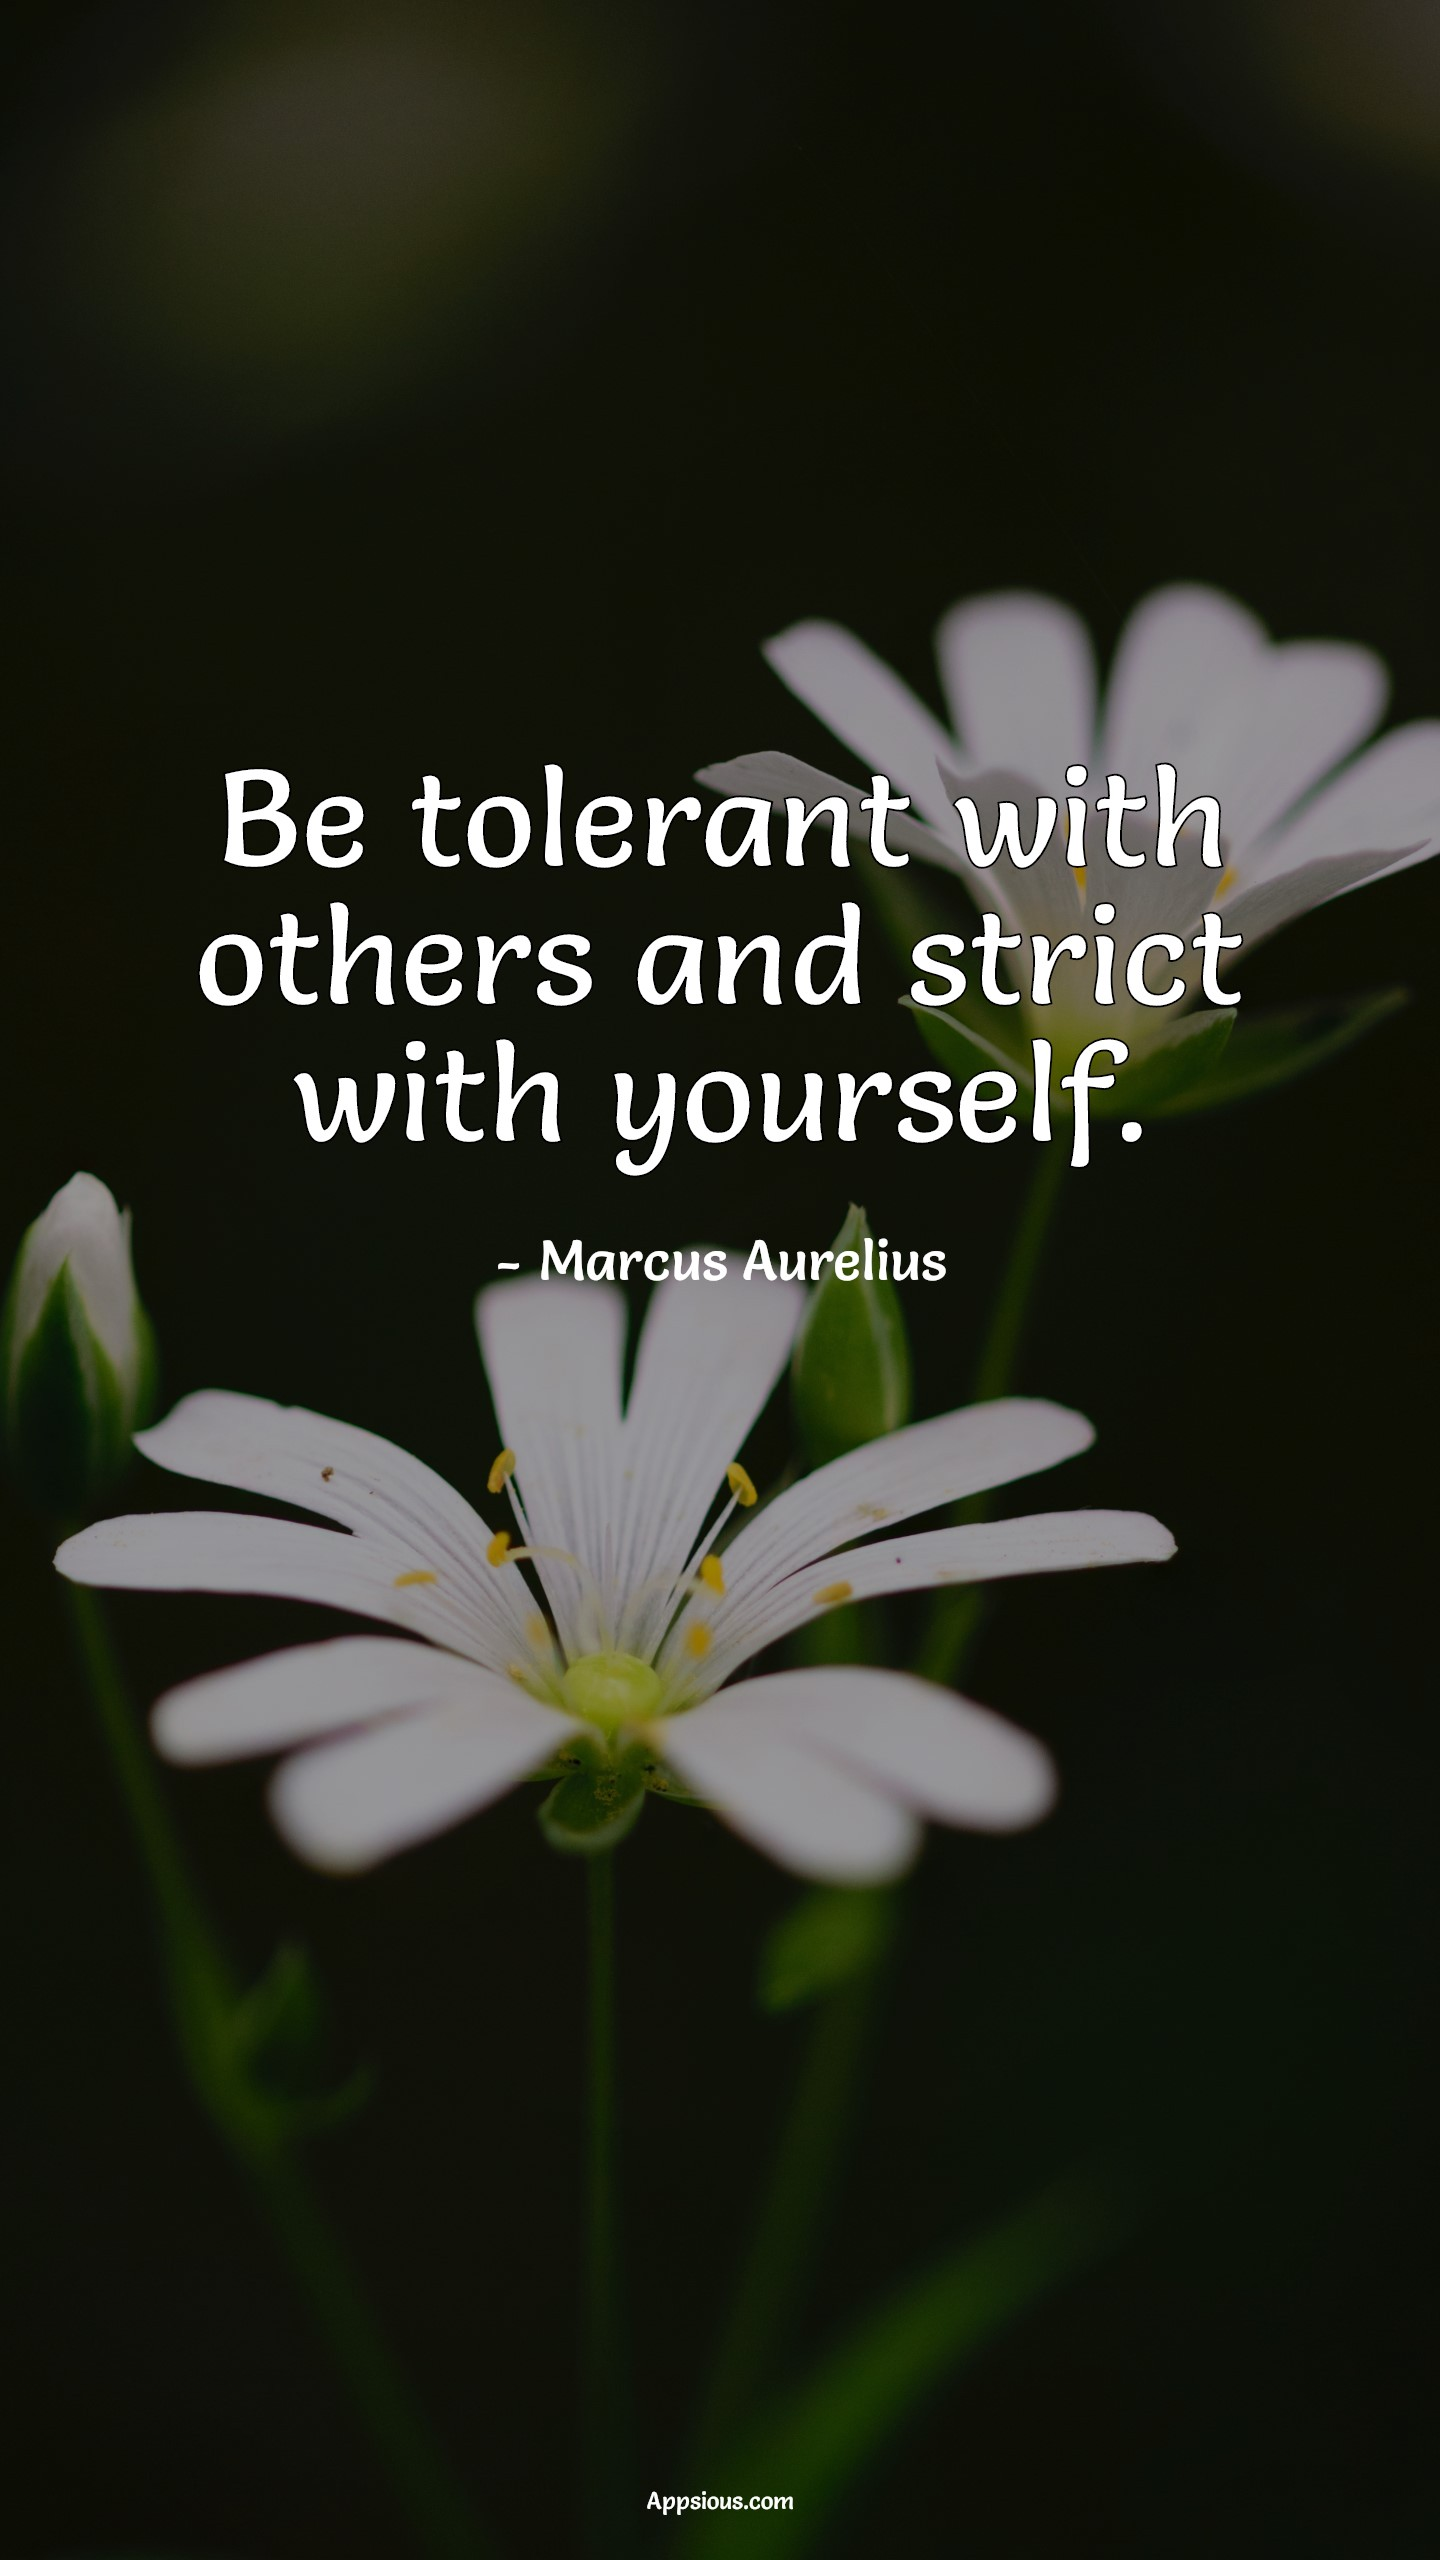 Be tolerant with others and strict with yourself.